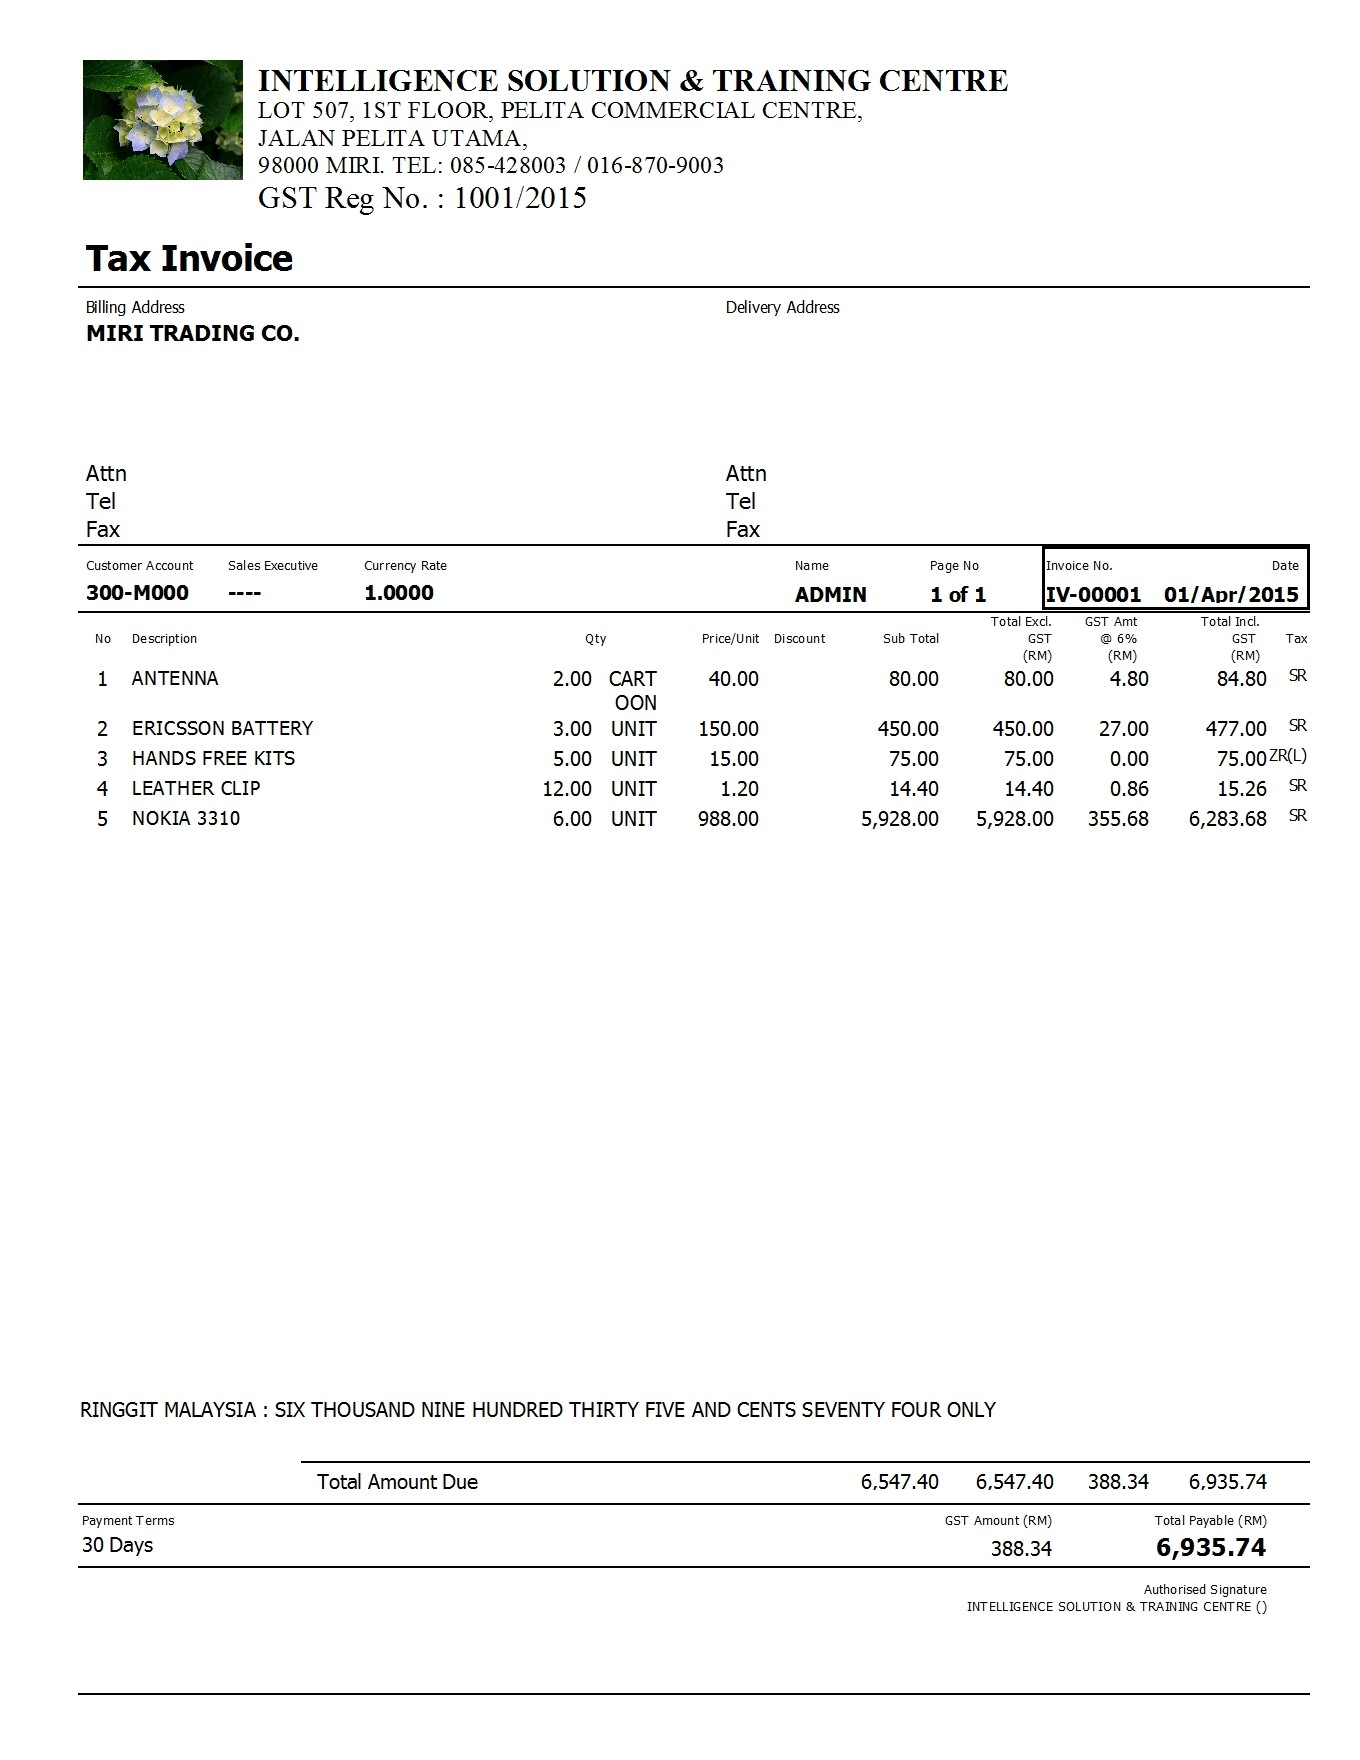 gst istc invoice with gst